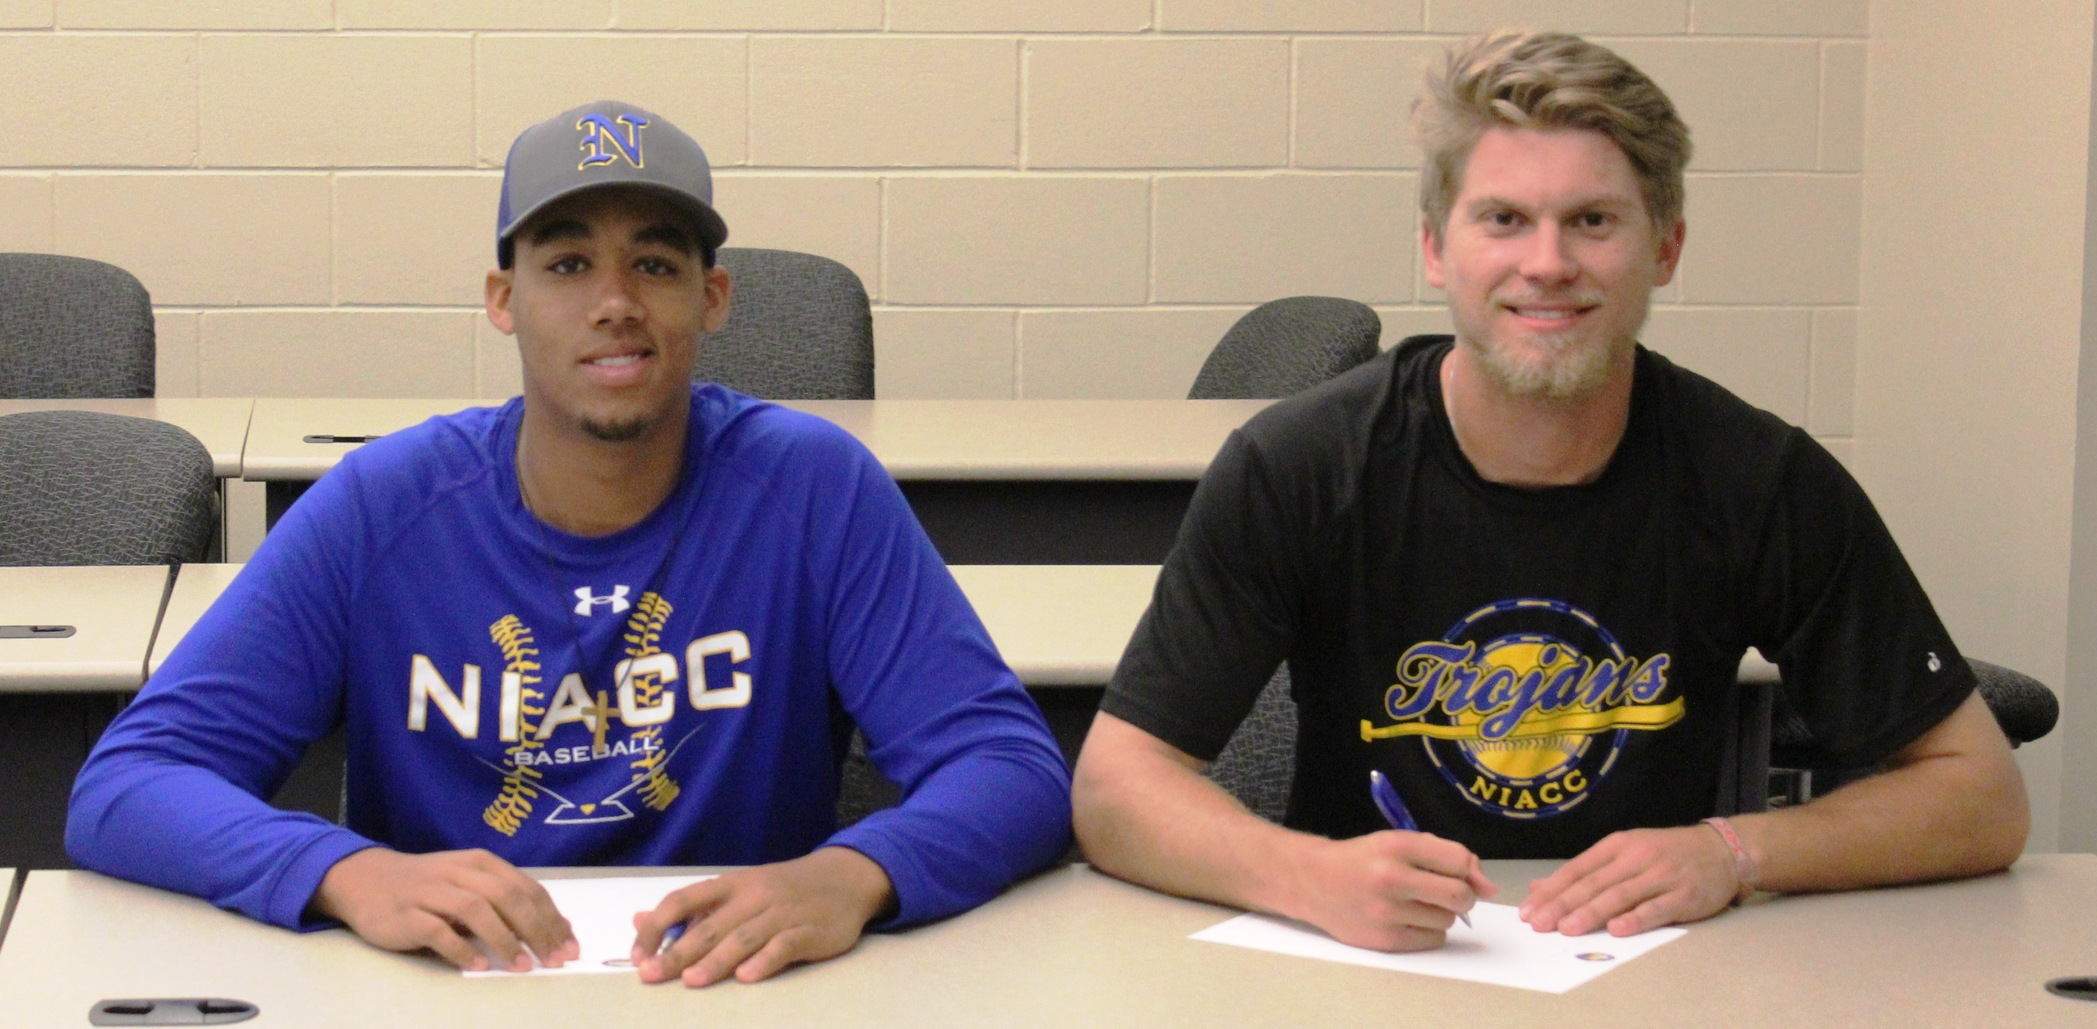 Ryan Huntington (left) signed with Grambling State and Connor Enochs signed with Southern Illinois-Edwardsville.